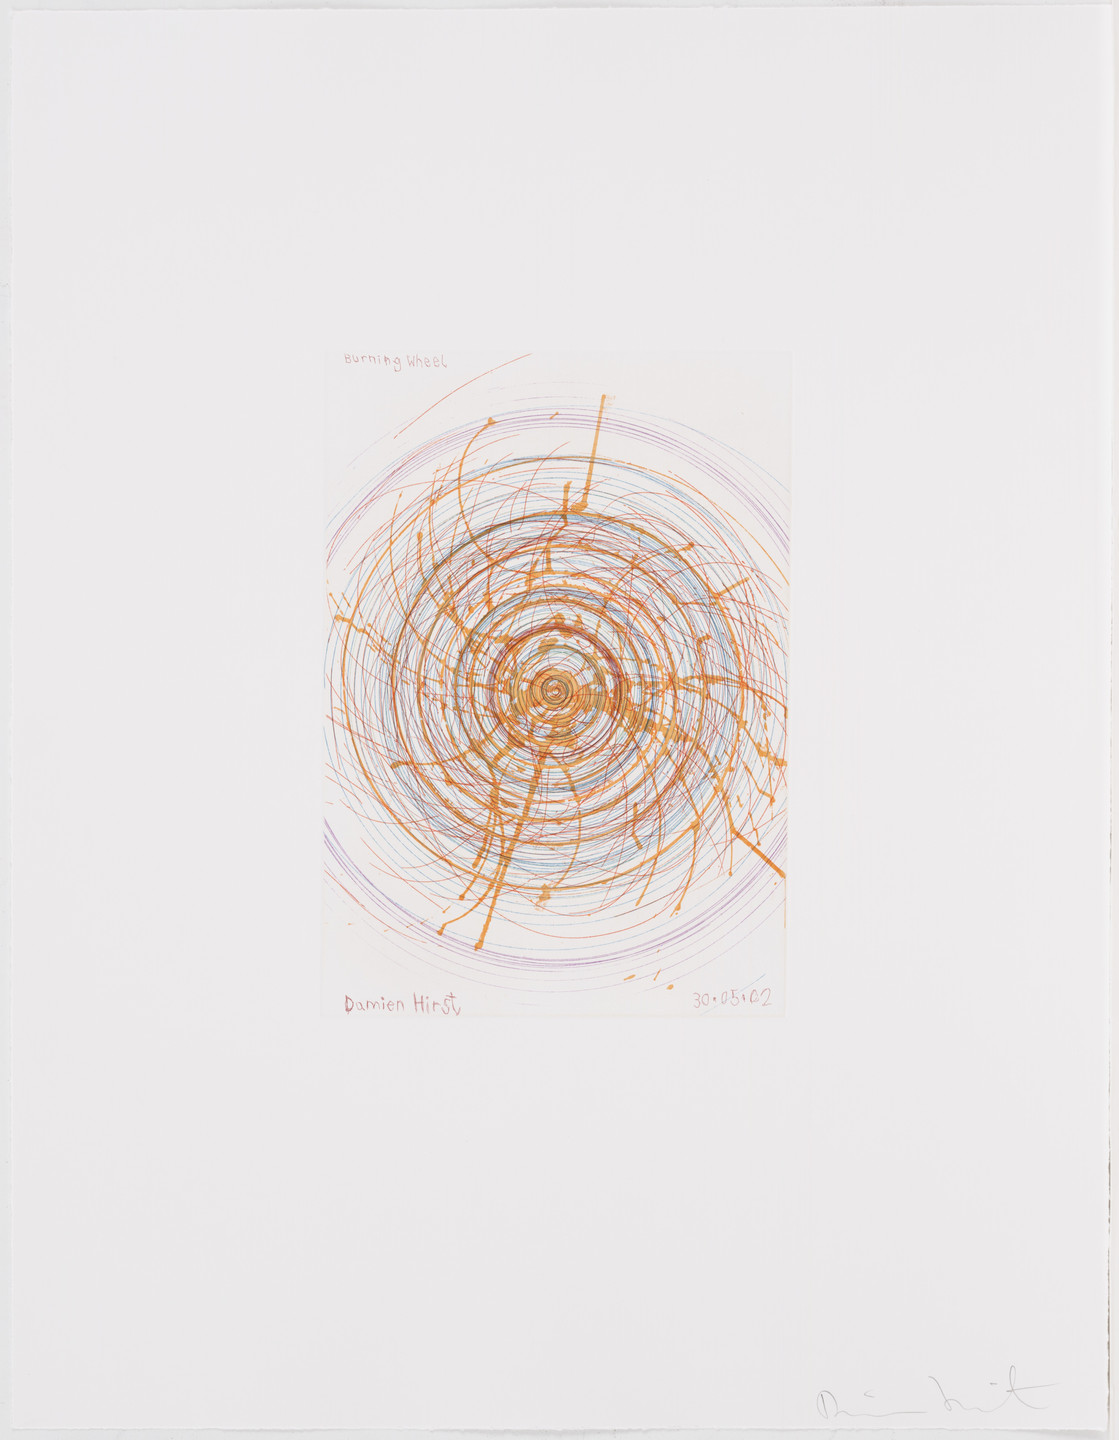 Damien Hirst. Burning Wheel from In a Spin, the Action of the World on Things, Volume I. 2002